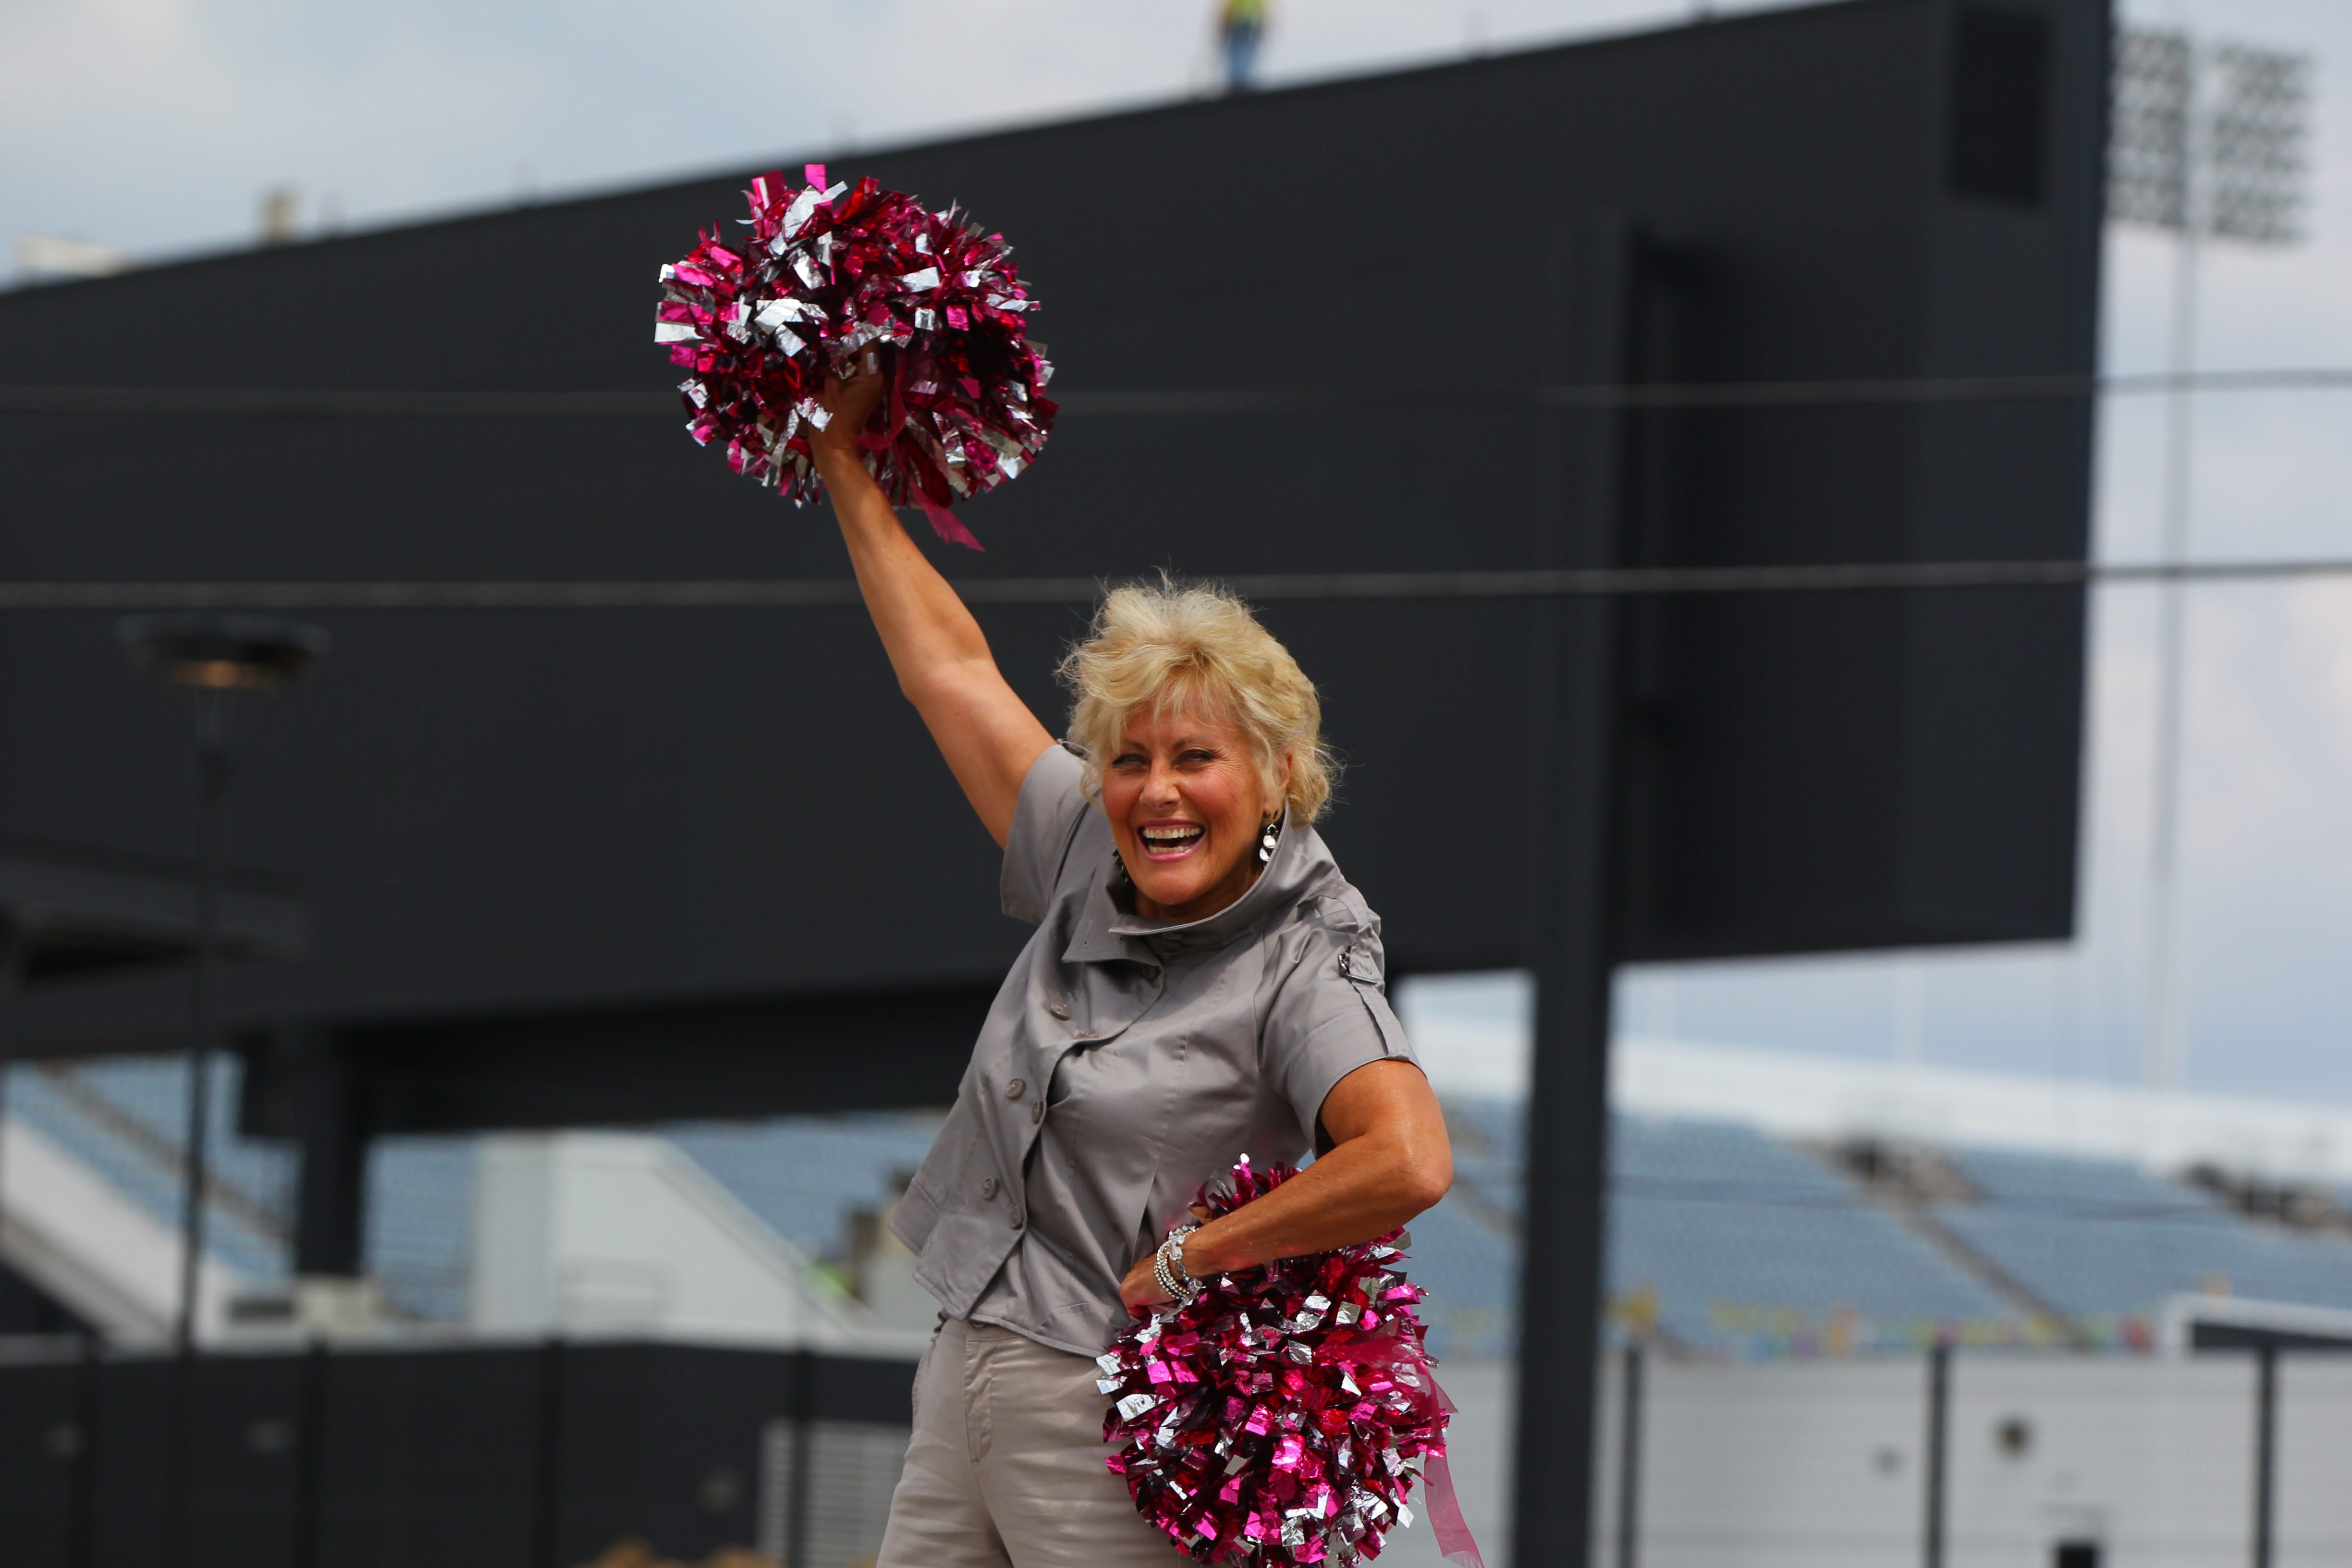 Chris Polito, photographed last week at Ralph Wilson Stadium, was a Buffalo Jills cheerleader from 1971 to 1985 and is helping to organize an NFL cheerleaders reunion here in 2016. She doesn't think the Bills will suffer this year as a result of the Jills' being sidelined.